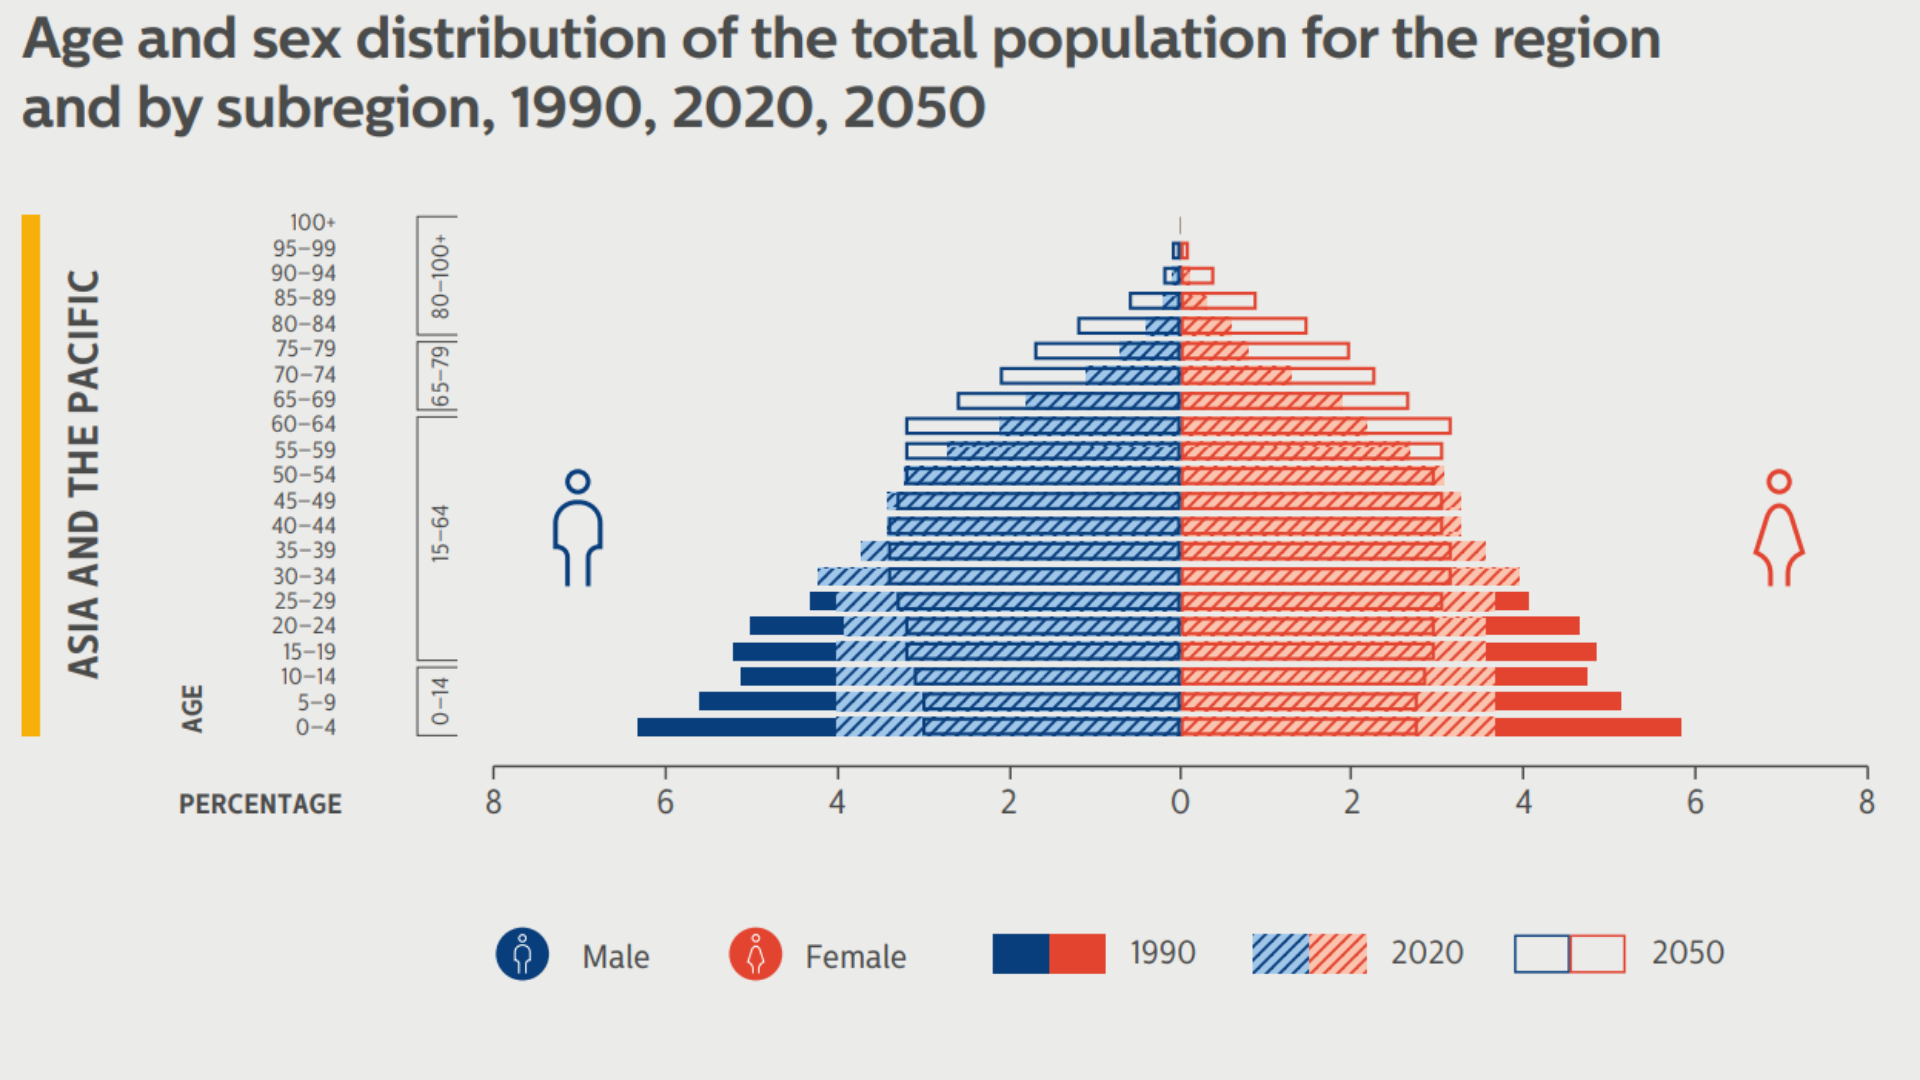 Bar chart showing age and sex distribution for total population, Asia-Pacific - 1990, 2020 & 2050.